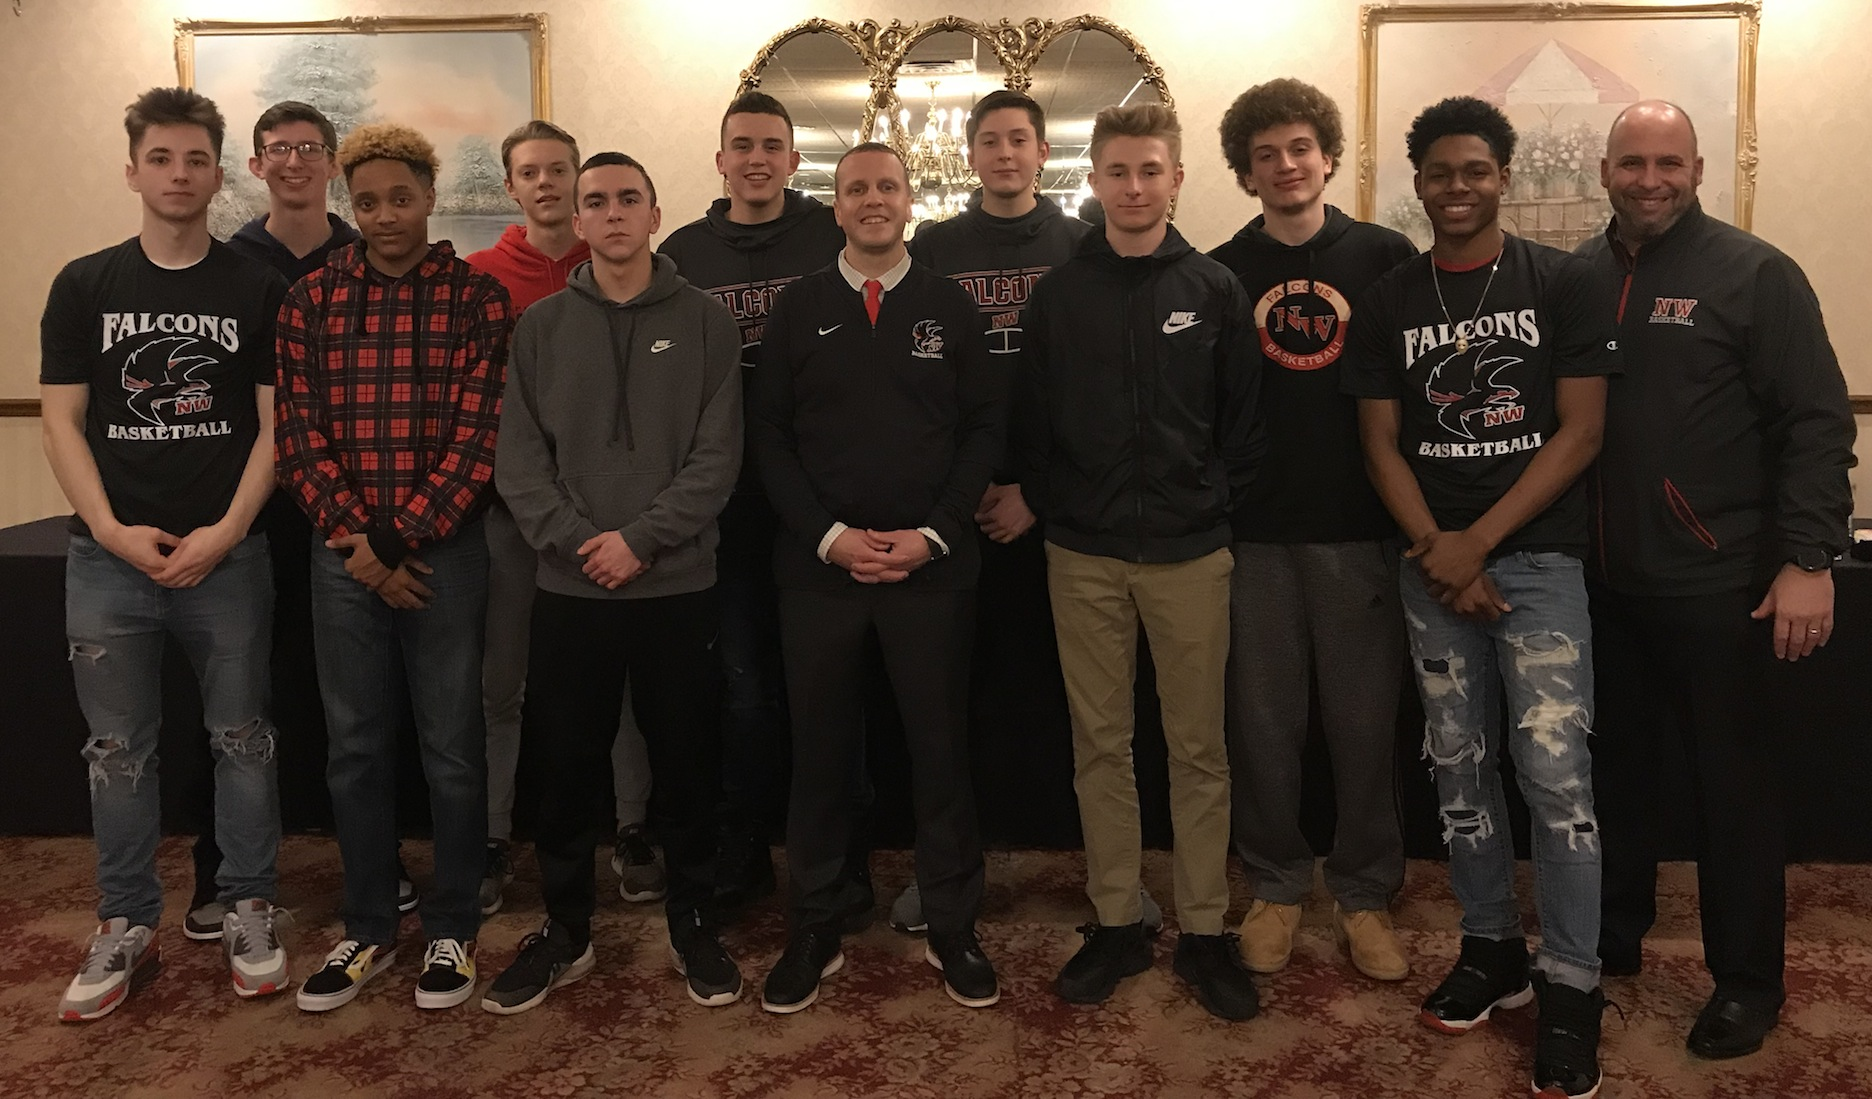 The Niagara-Wheatfield boys basketball team poses following its end-of-the-year banquet at Pane's restaurant. From left, back row, Jay Smith, Ryan Mellerski, Cam Miller, Joe Woroniecki, Zach Stanley and coach Steve Miller. From left, front row, Roman Wright, TJ Robinson, Ben Salomon, head coach Erik O'Bryan, Andy DeVantier and Raejaun Smith. (Photo by David Yarger)